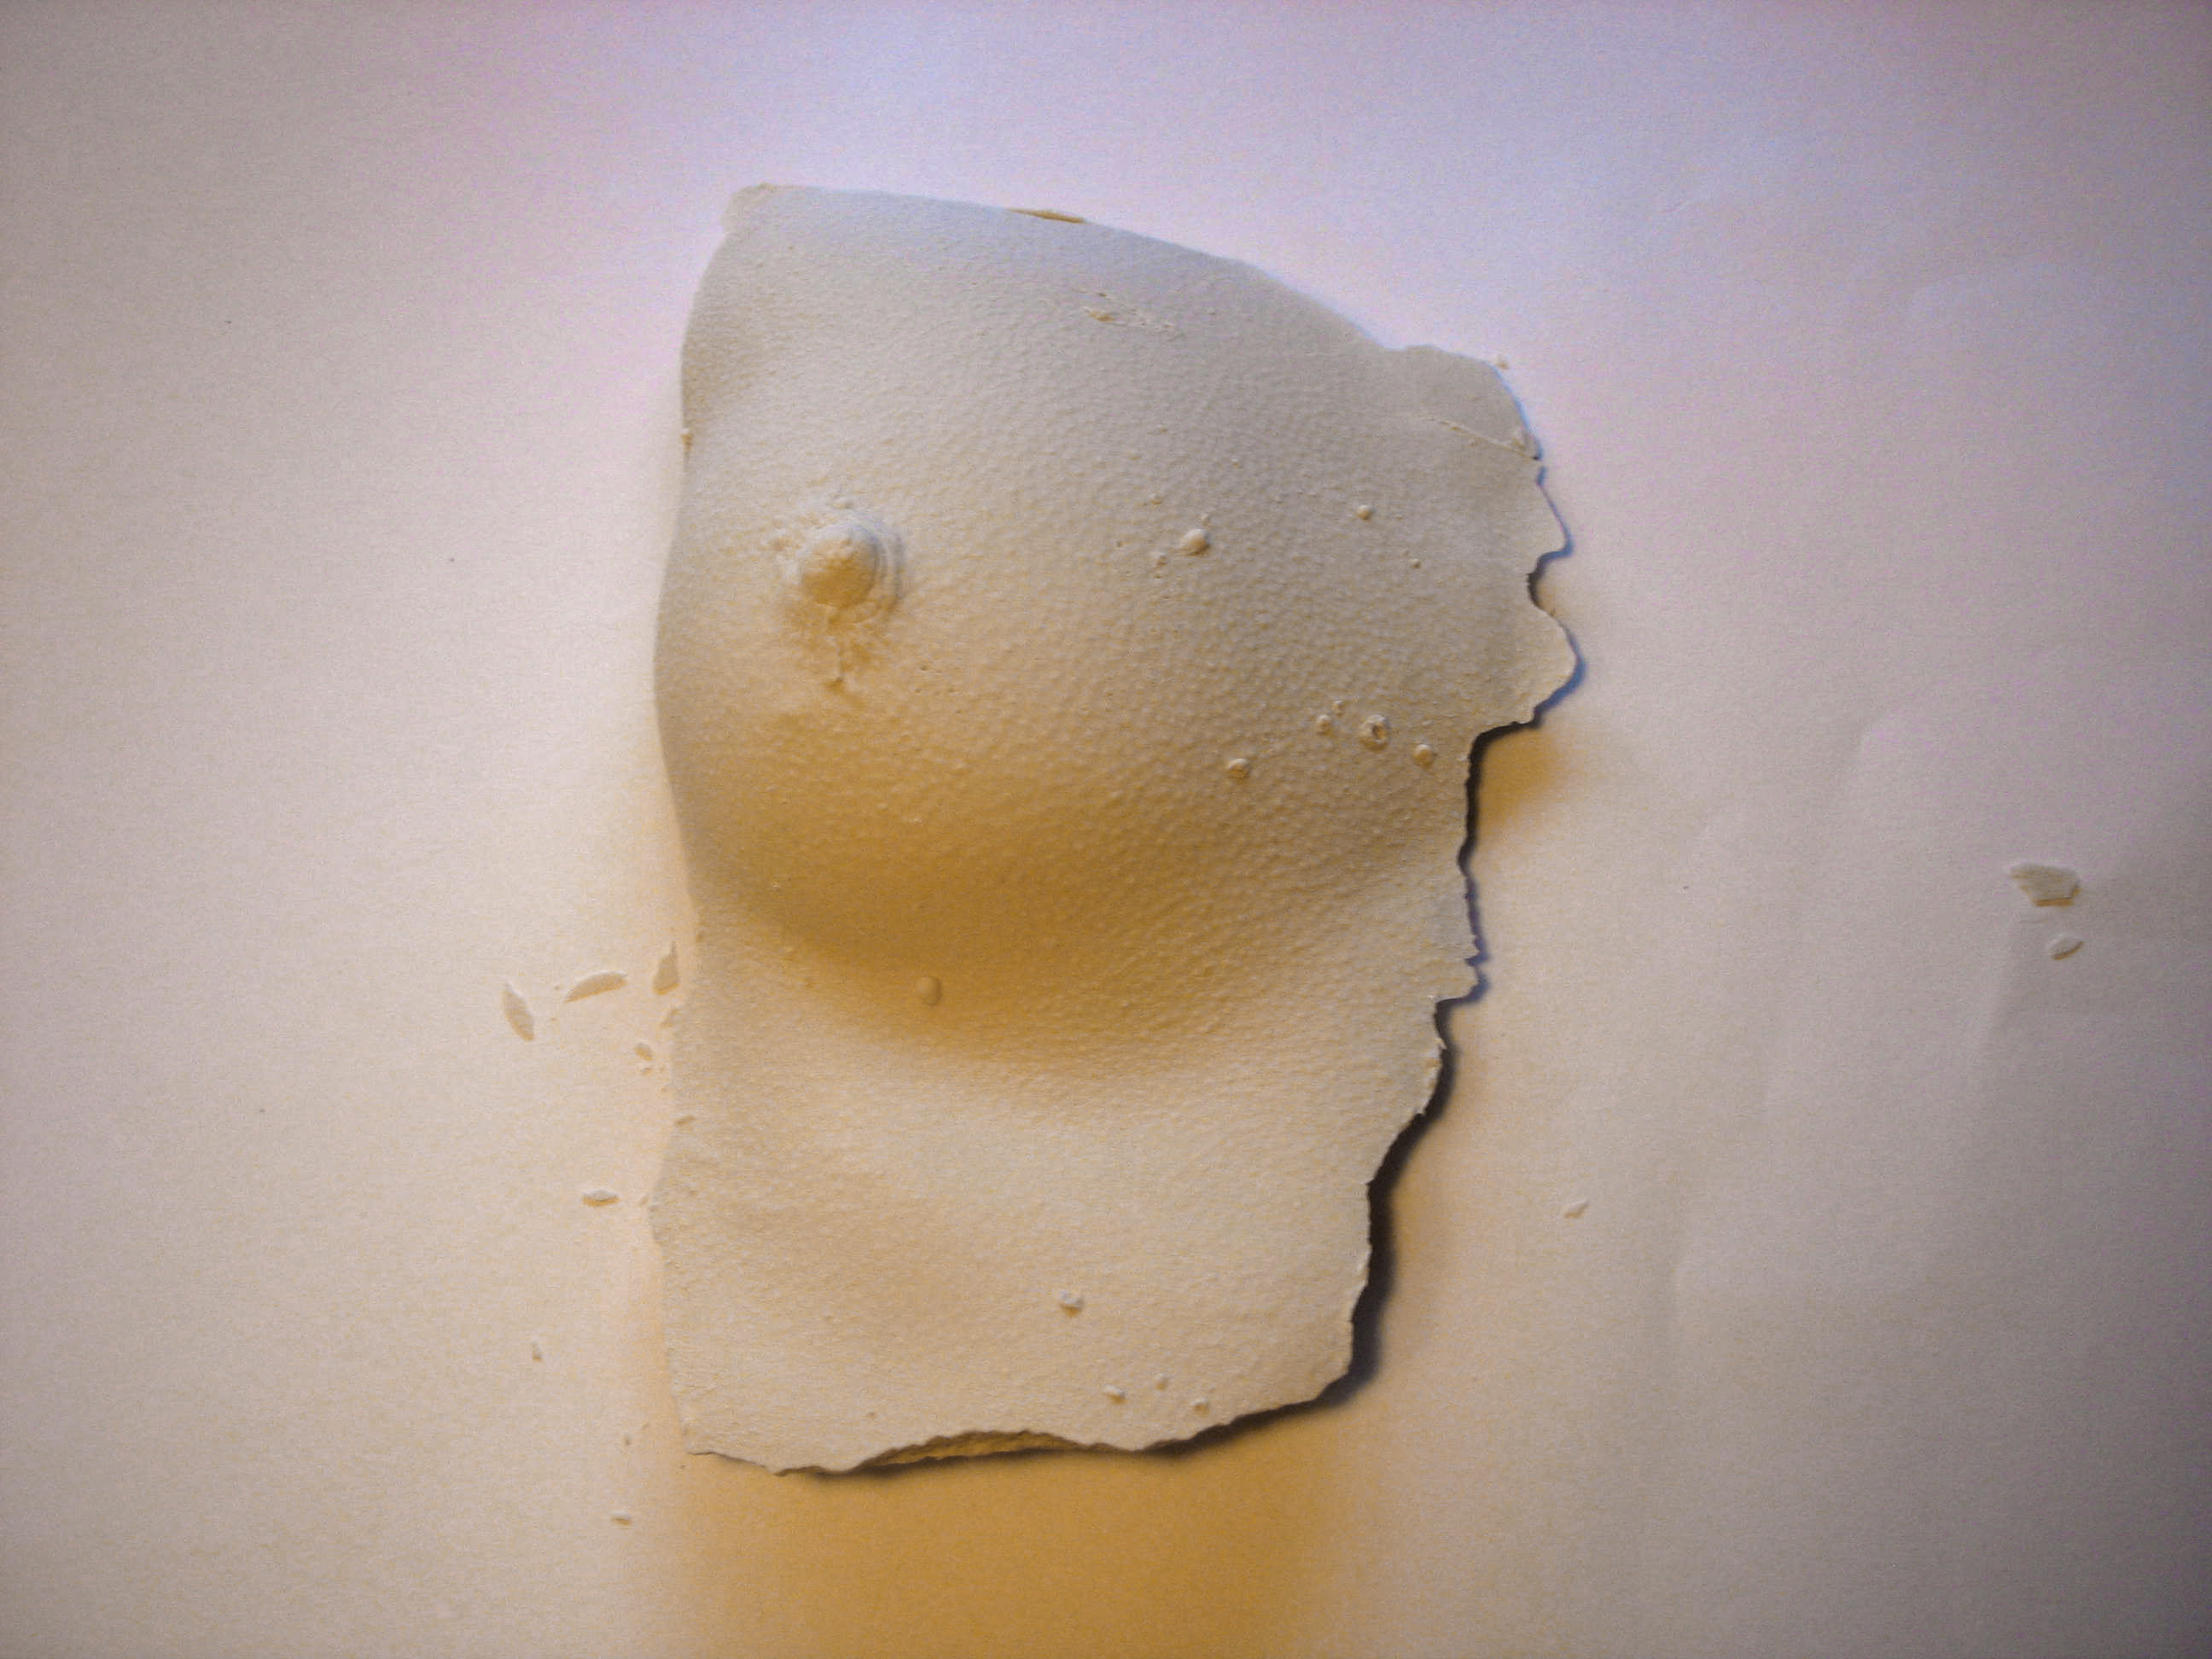 Replicating body parts in plaster